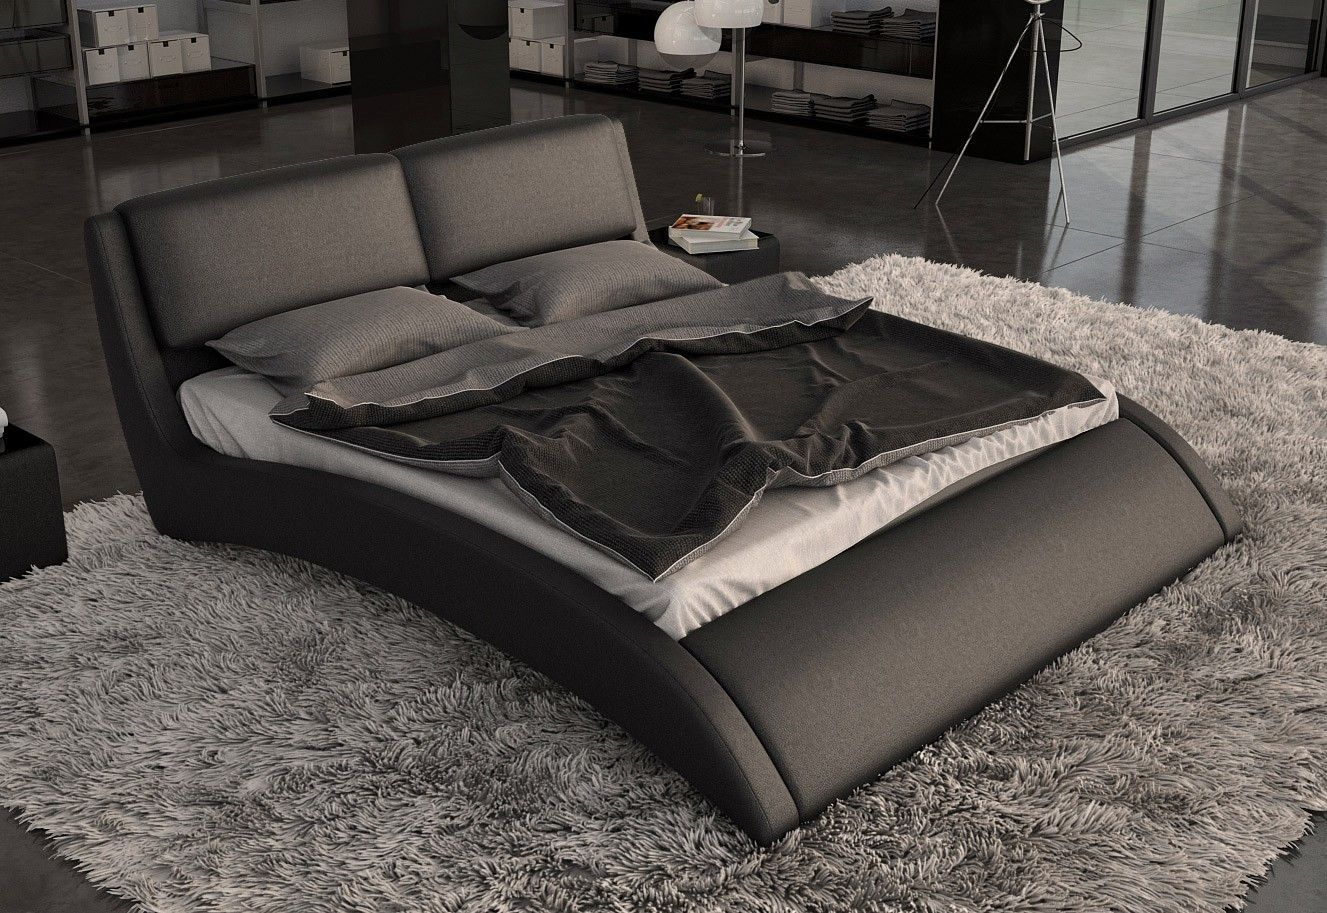 the beauty and delight of sleeping on a leather bed with modern